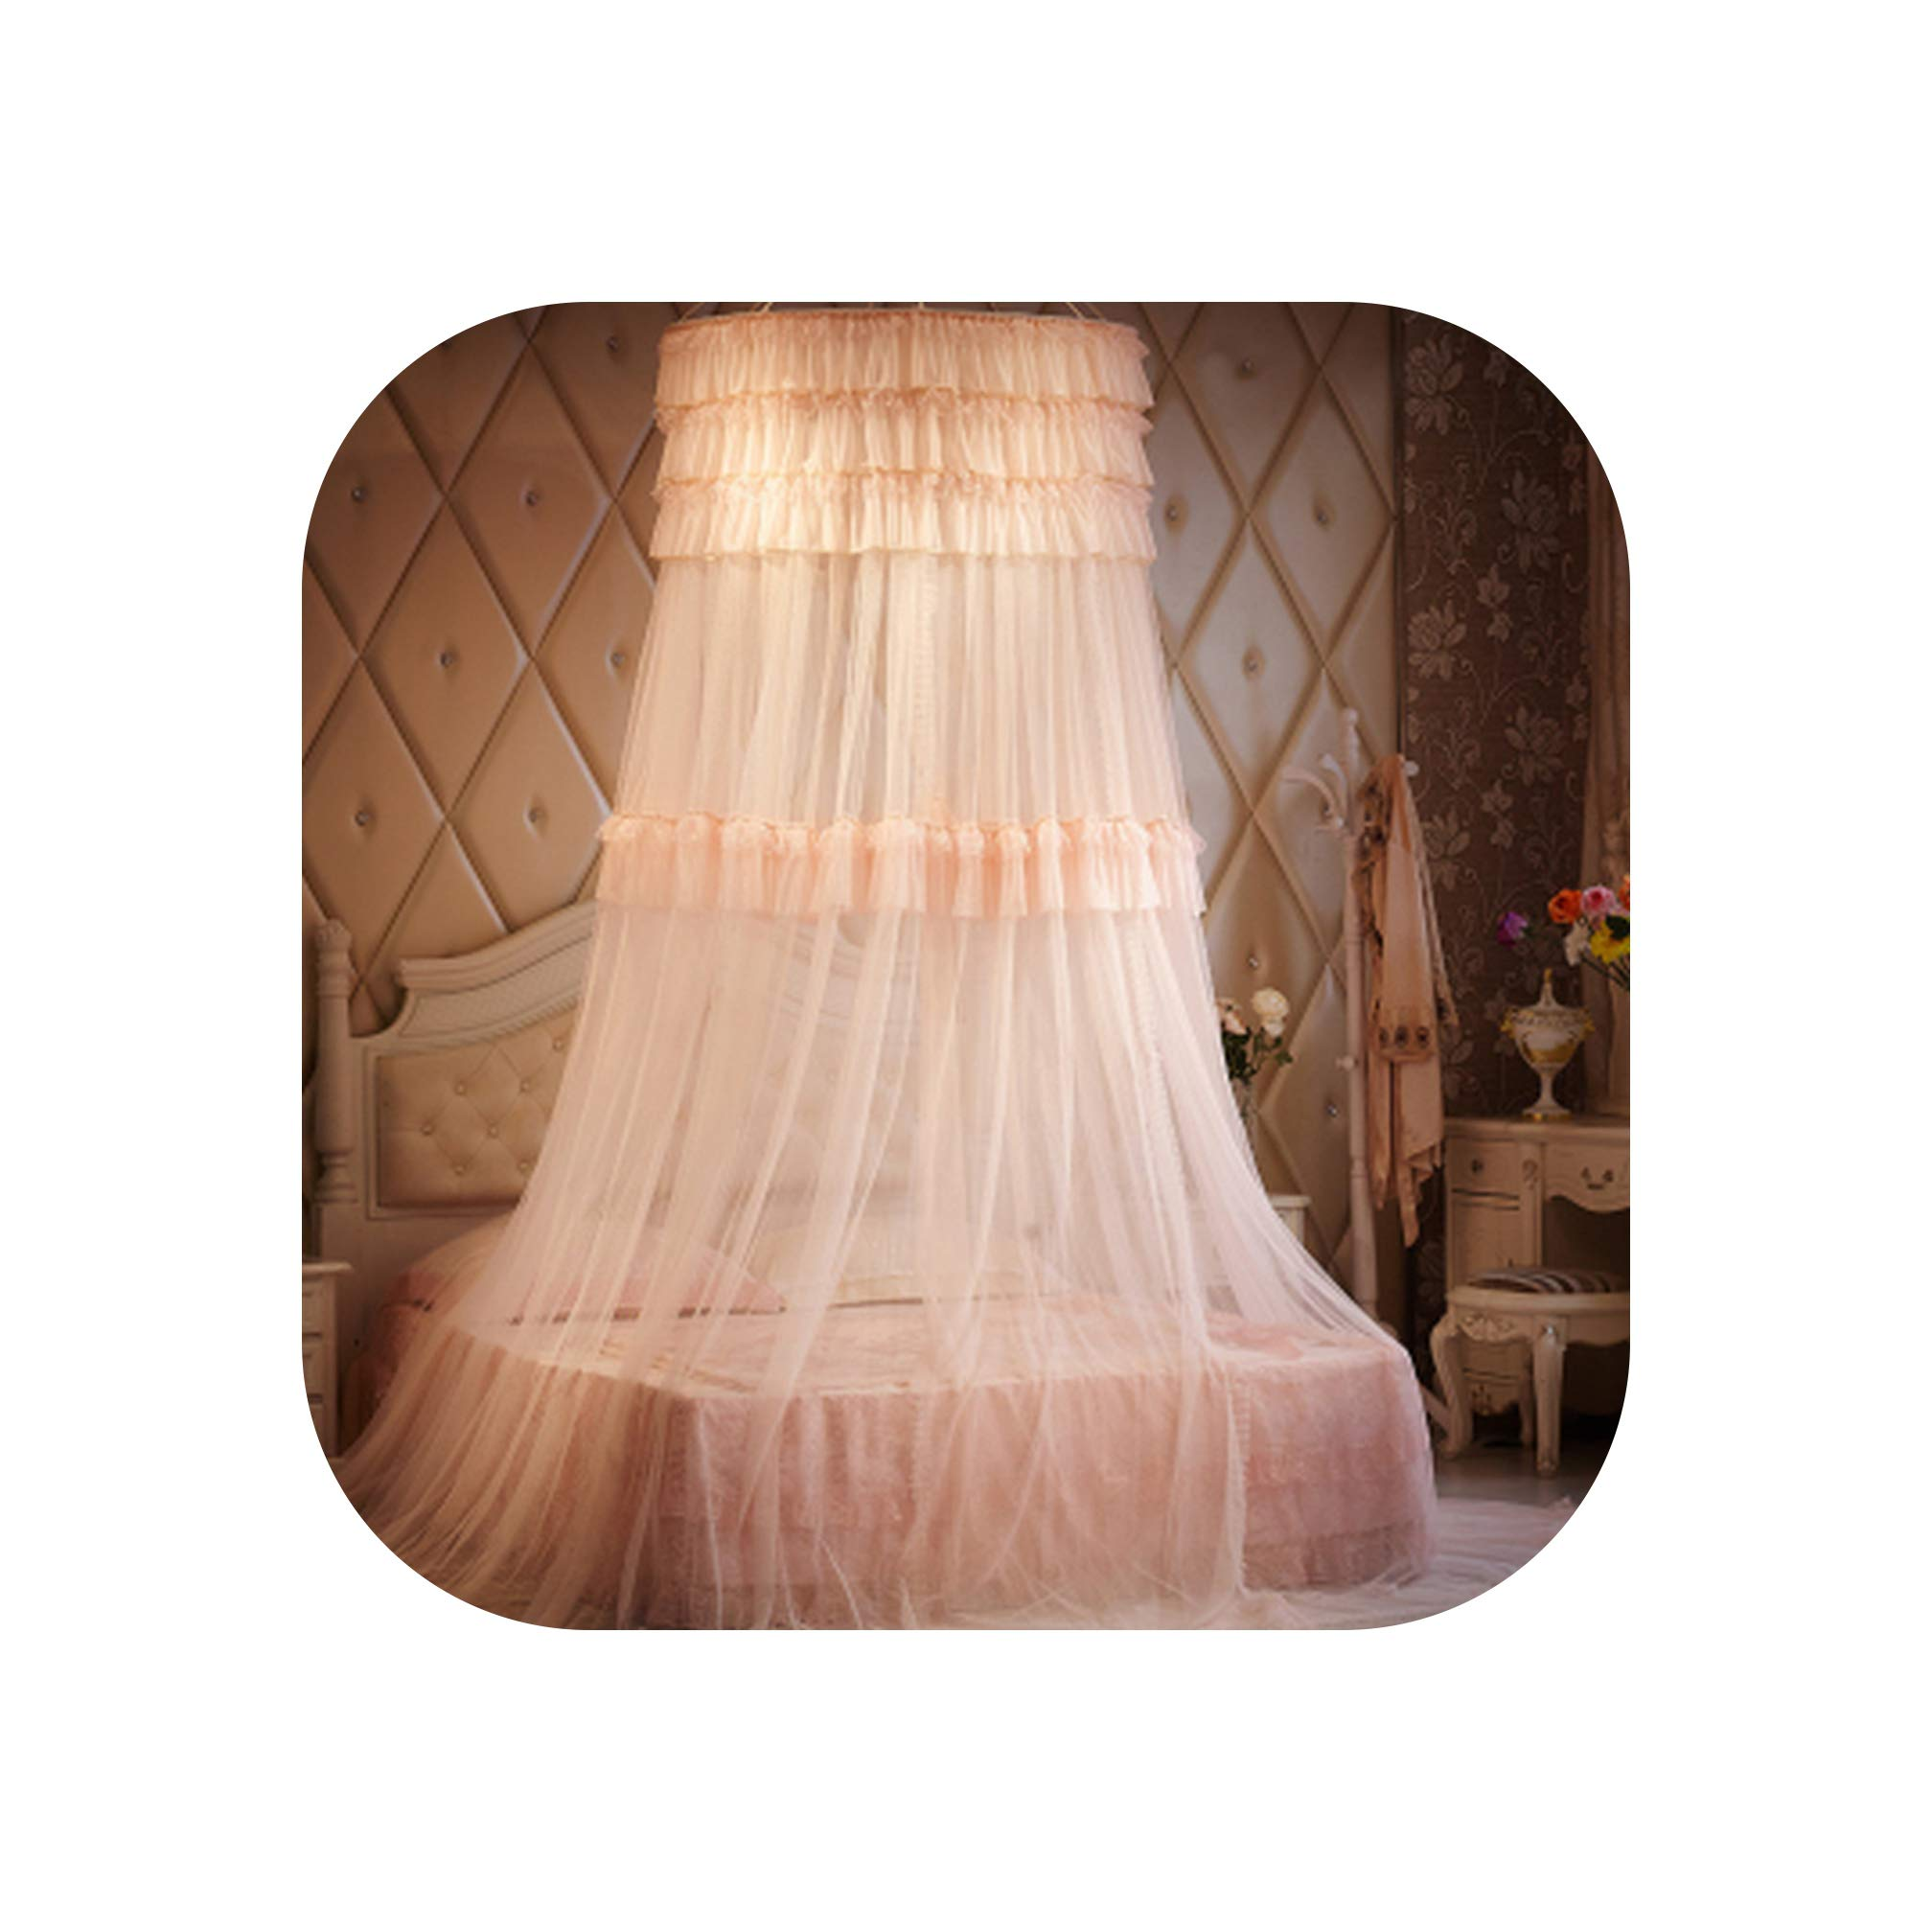 Lace Dome Mosquito Nets for Summer Round Insect Reject Net Bed Canopy Romantic CurtaMosquito Repellent Bed Tent,Jade Color,1.0m (3.3 feet) Bed